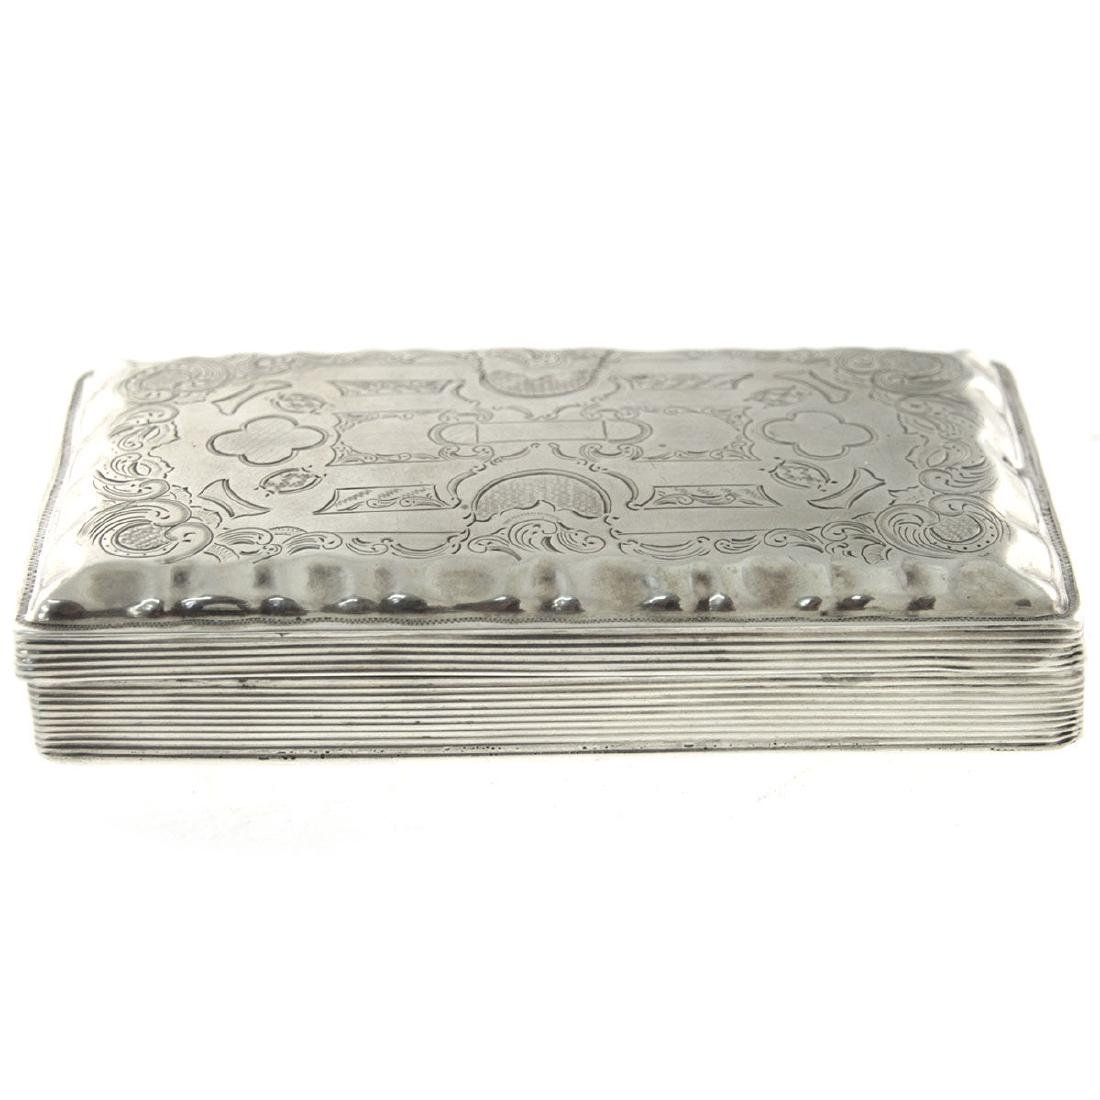 Dutch Silver Tobacco Snuff Box, 1860.